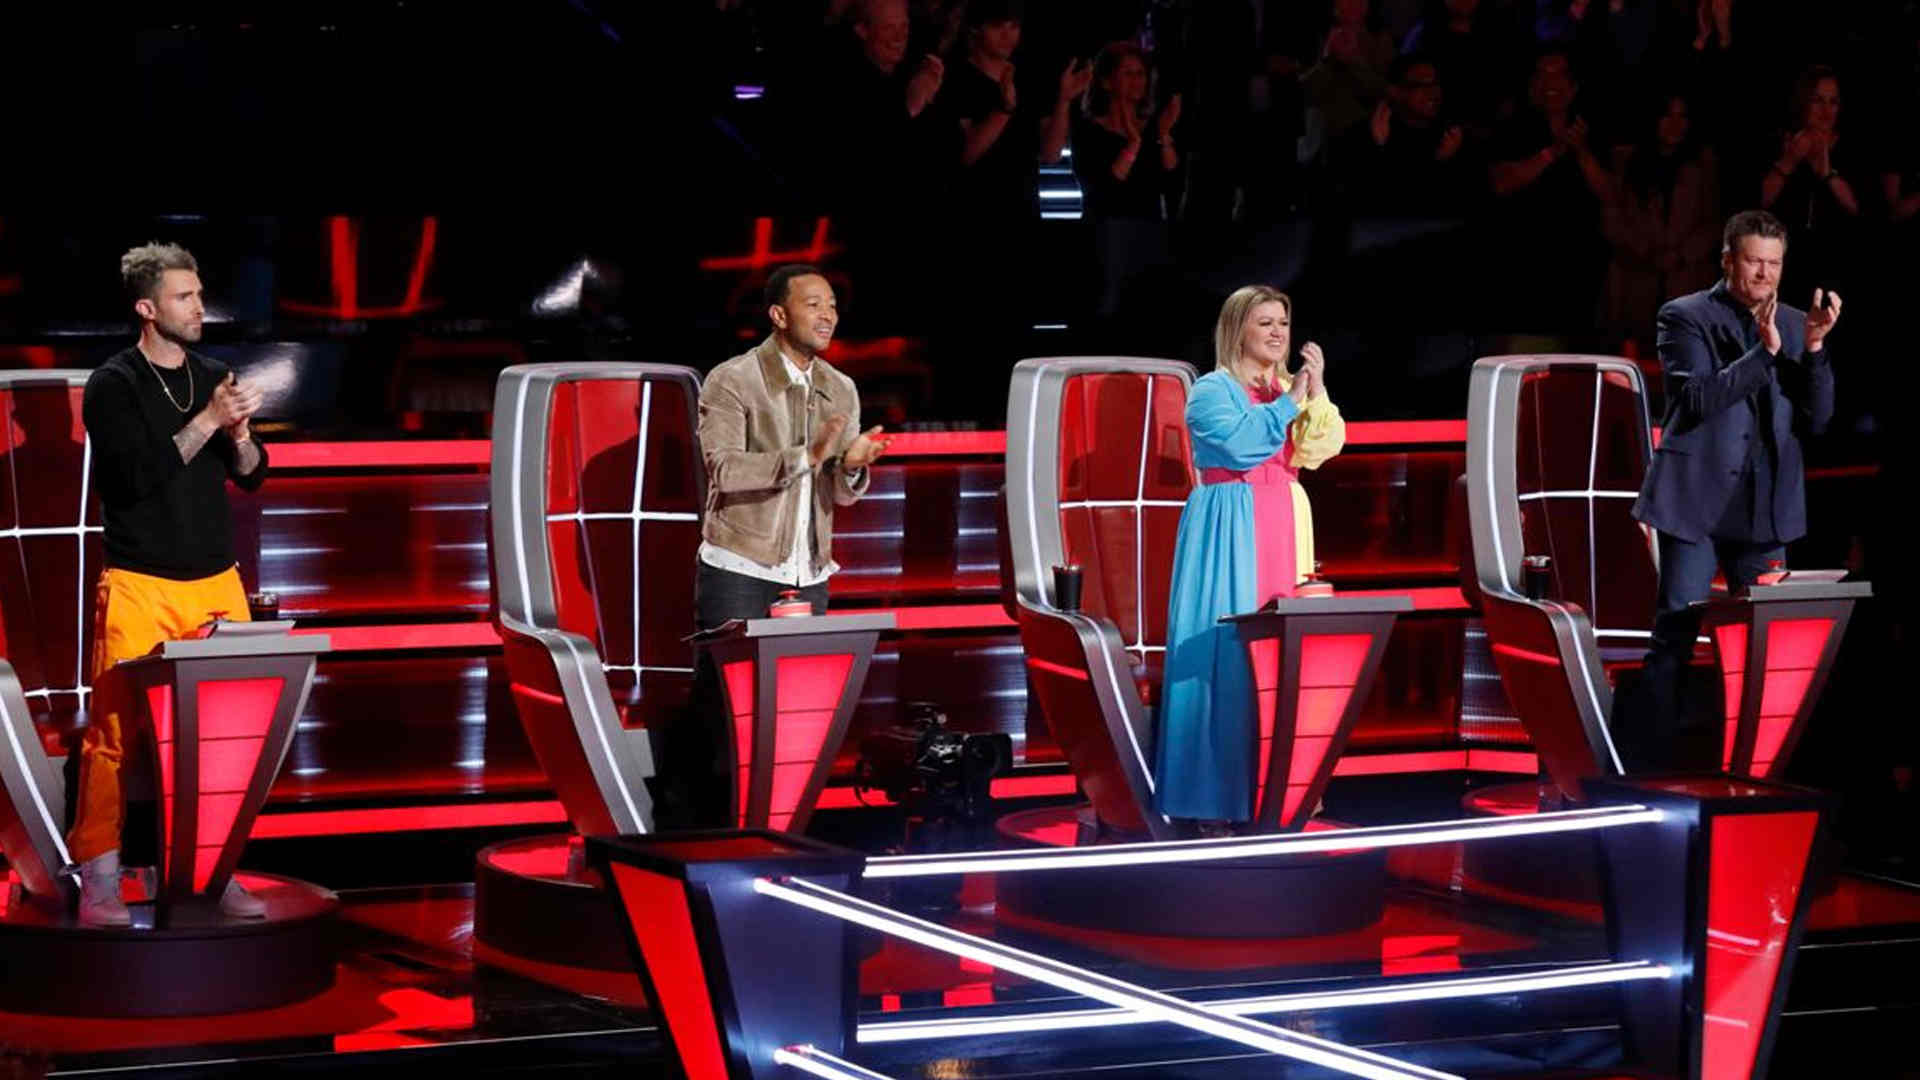 The Voice Season 16 Full Battles Round 3 on 9 April 2019 with the Voice 2019 Season 16